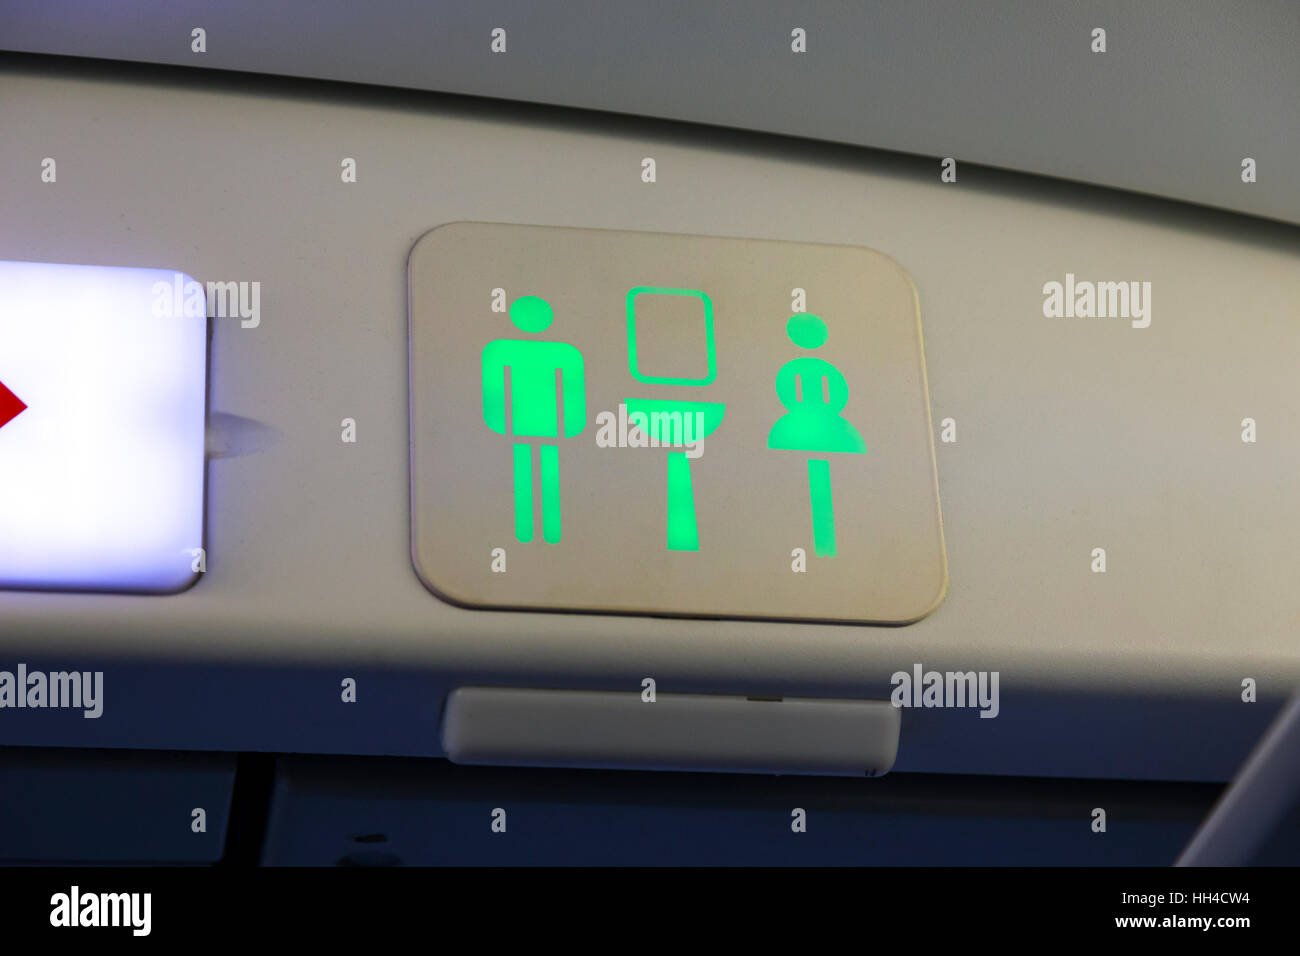 Toilet toilets sign / lavatory / loo / WC / ladies / gents / logo signs on an Airbus A320 airplane Air plane aeroplane - Stock Image